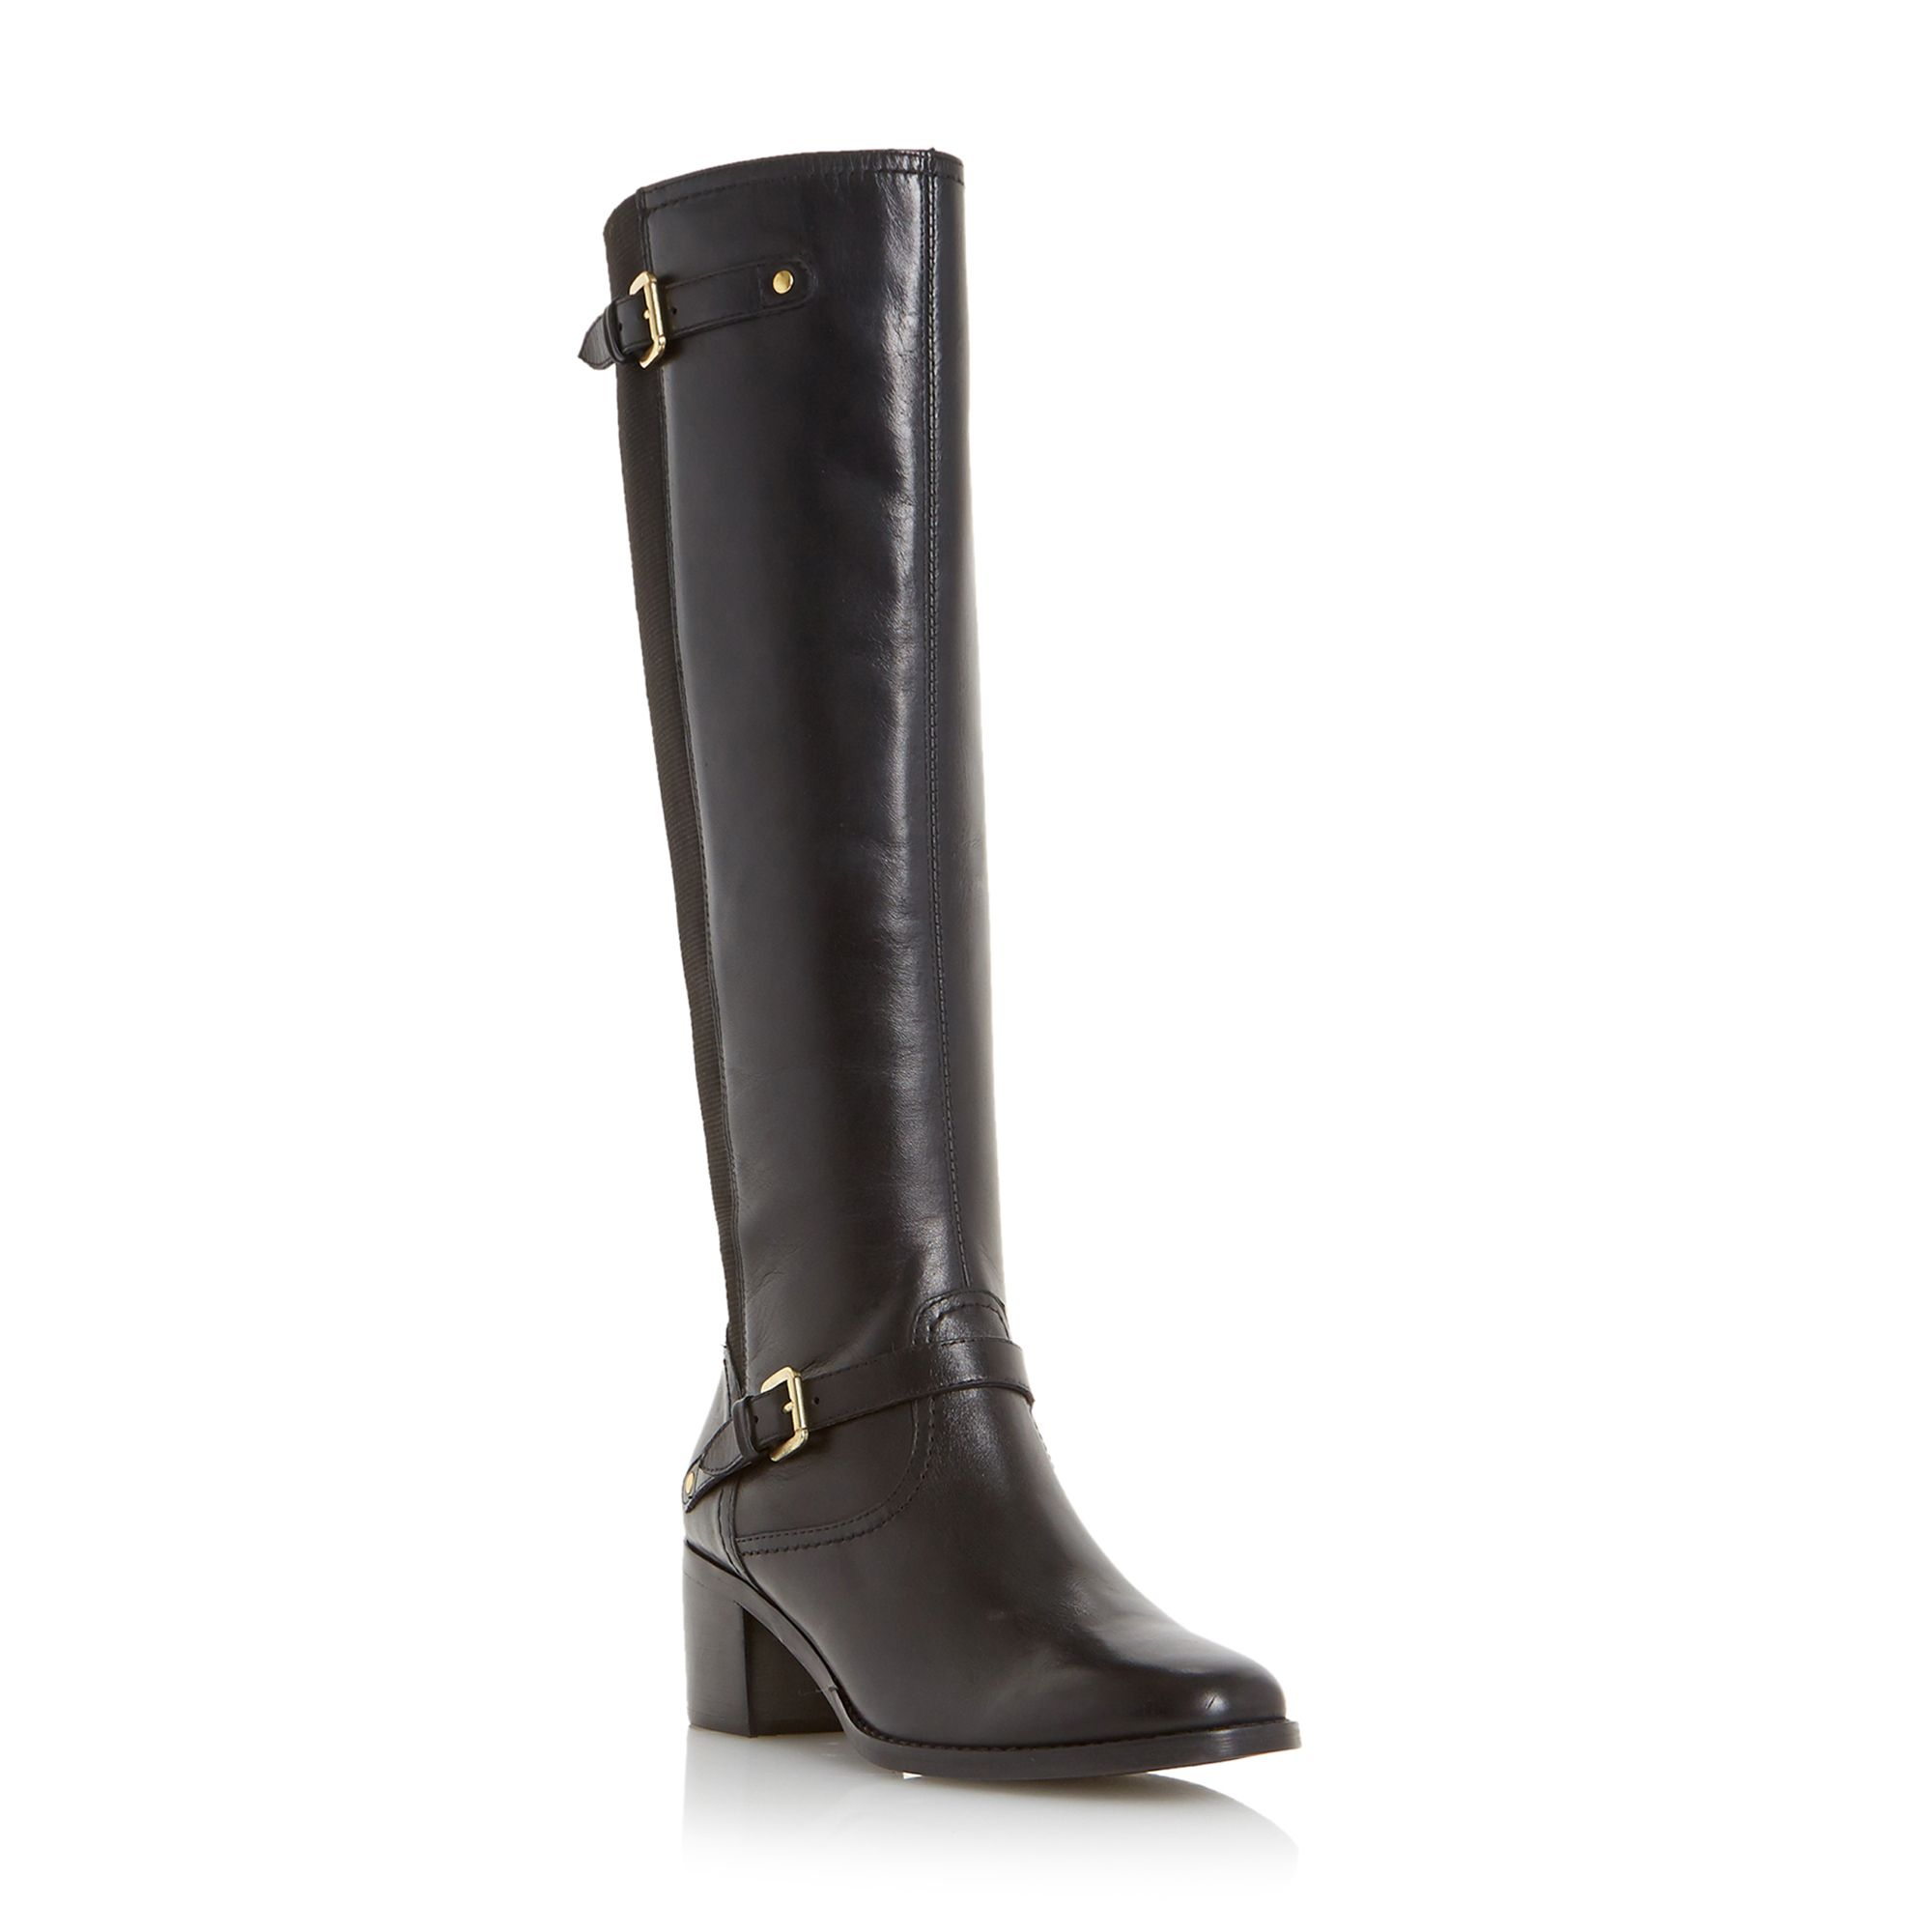 Dune Vivvi buckle knee high leather boots Black